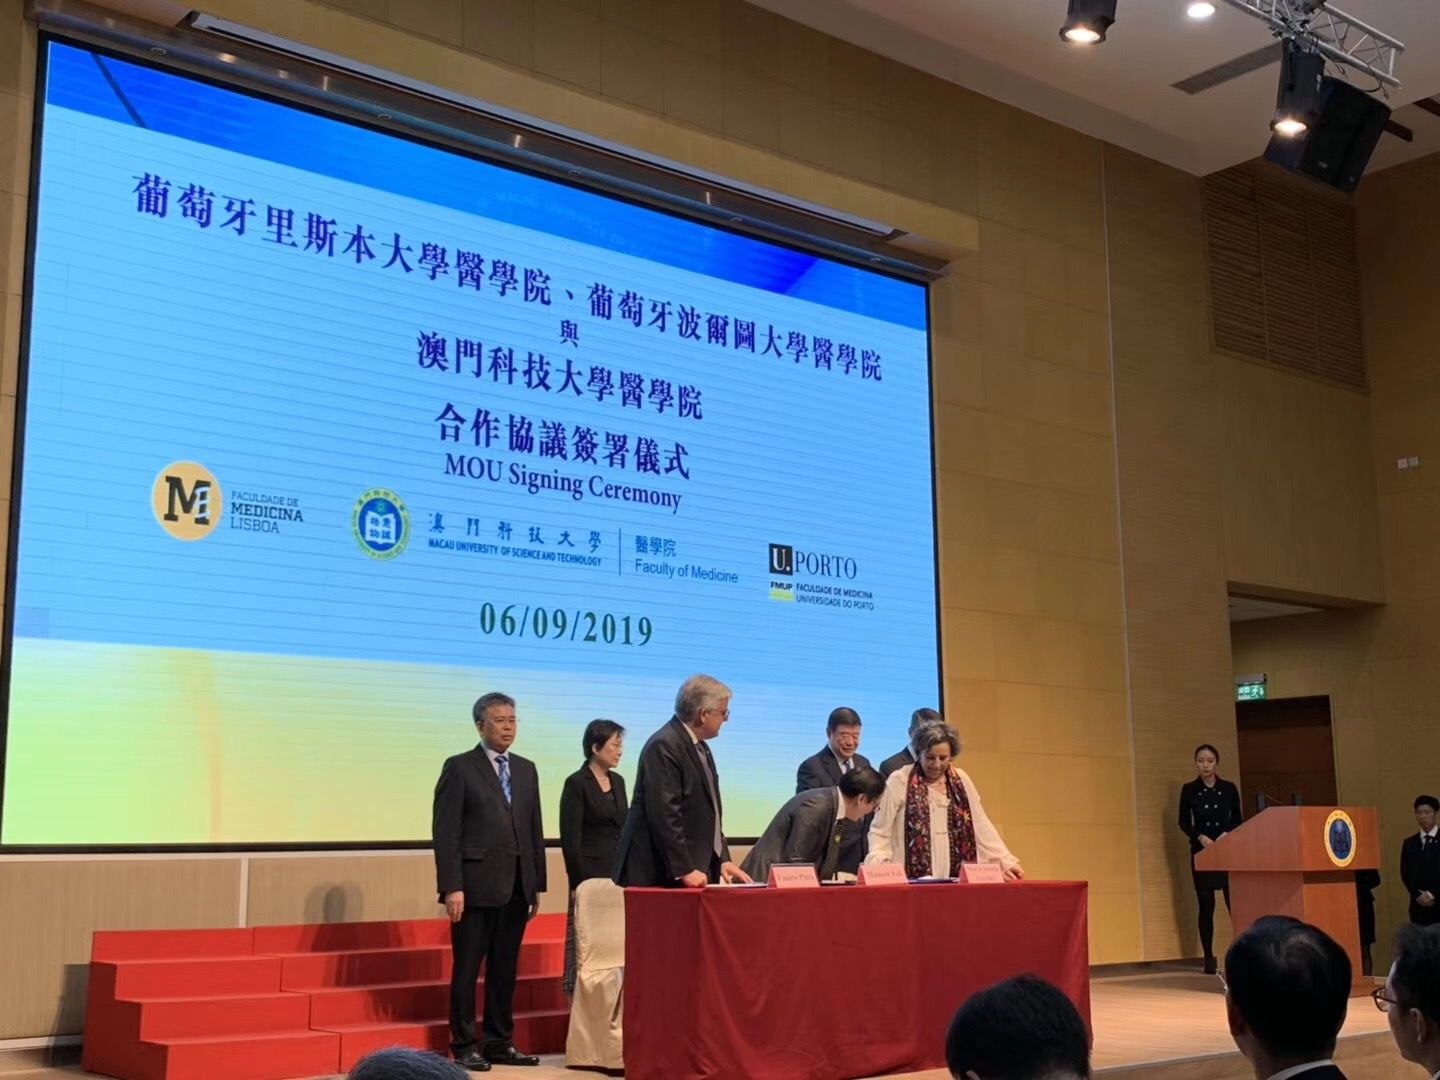 US Authentic Trading - Medical Devices - China Medical Display Center - MOU Signing Ceremony